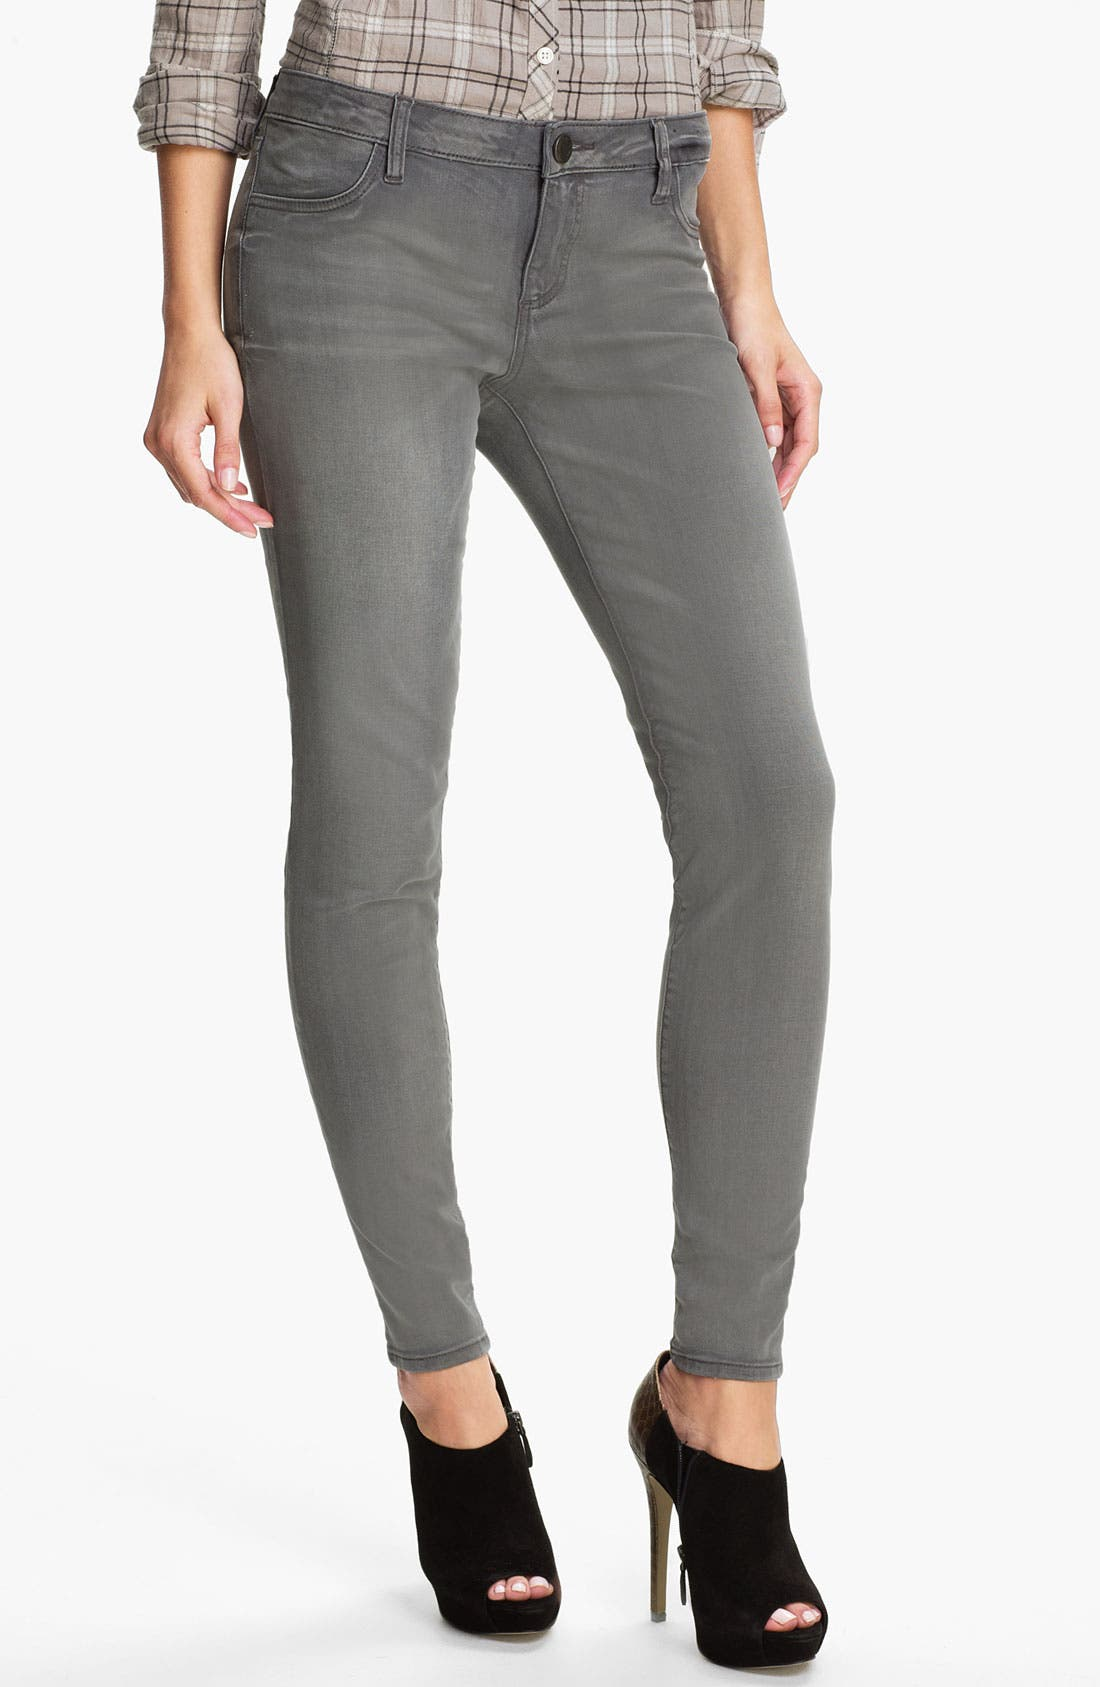 Main Image - KUT from the Kloth 'Jennifer' Skinny Stretch Jeans (Deluxe) (Online Exclusive)